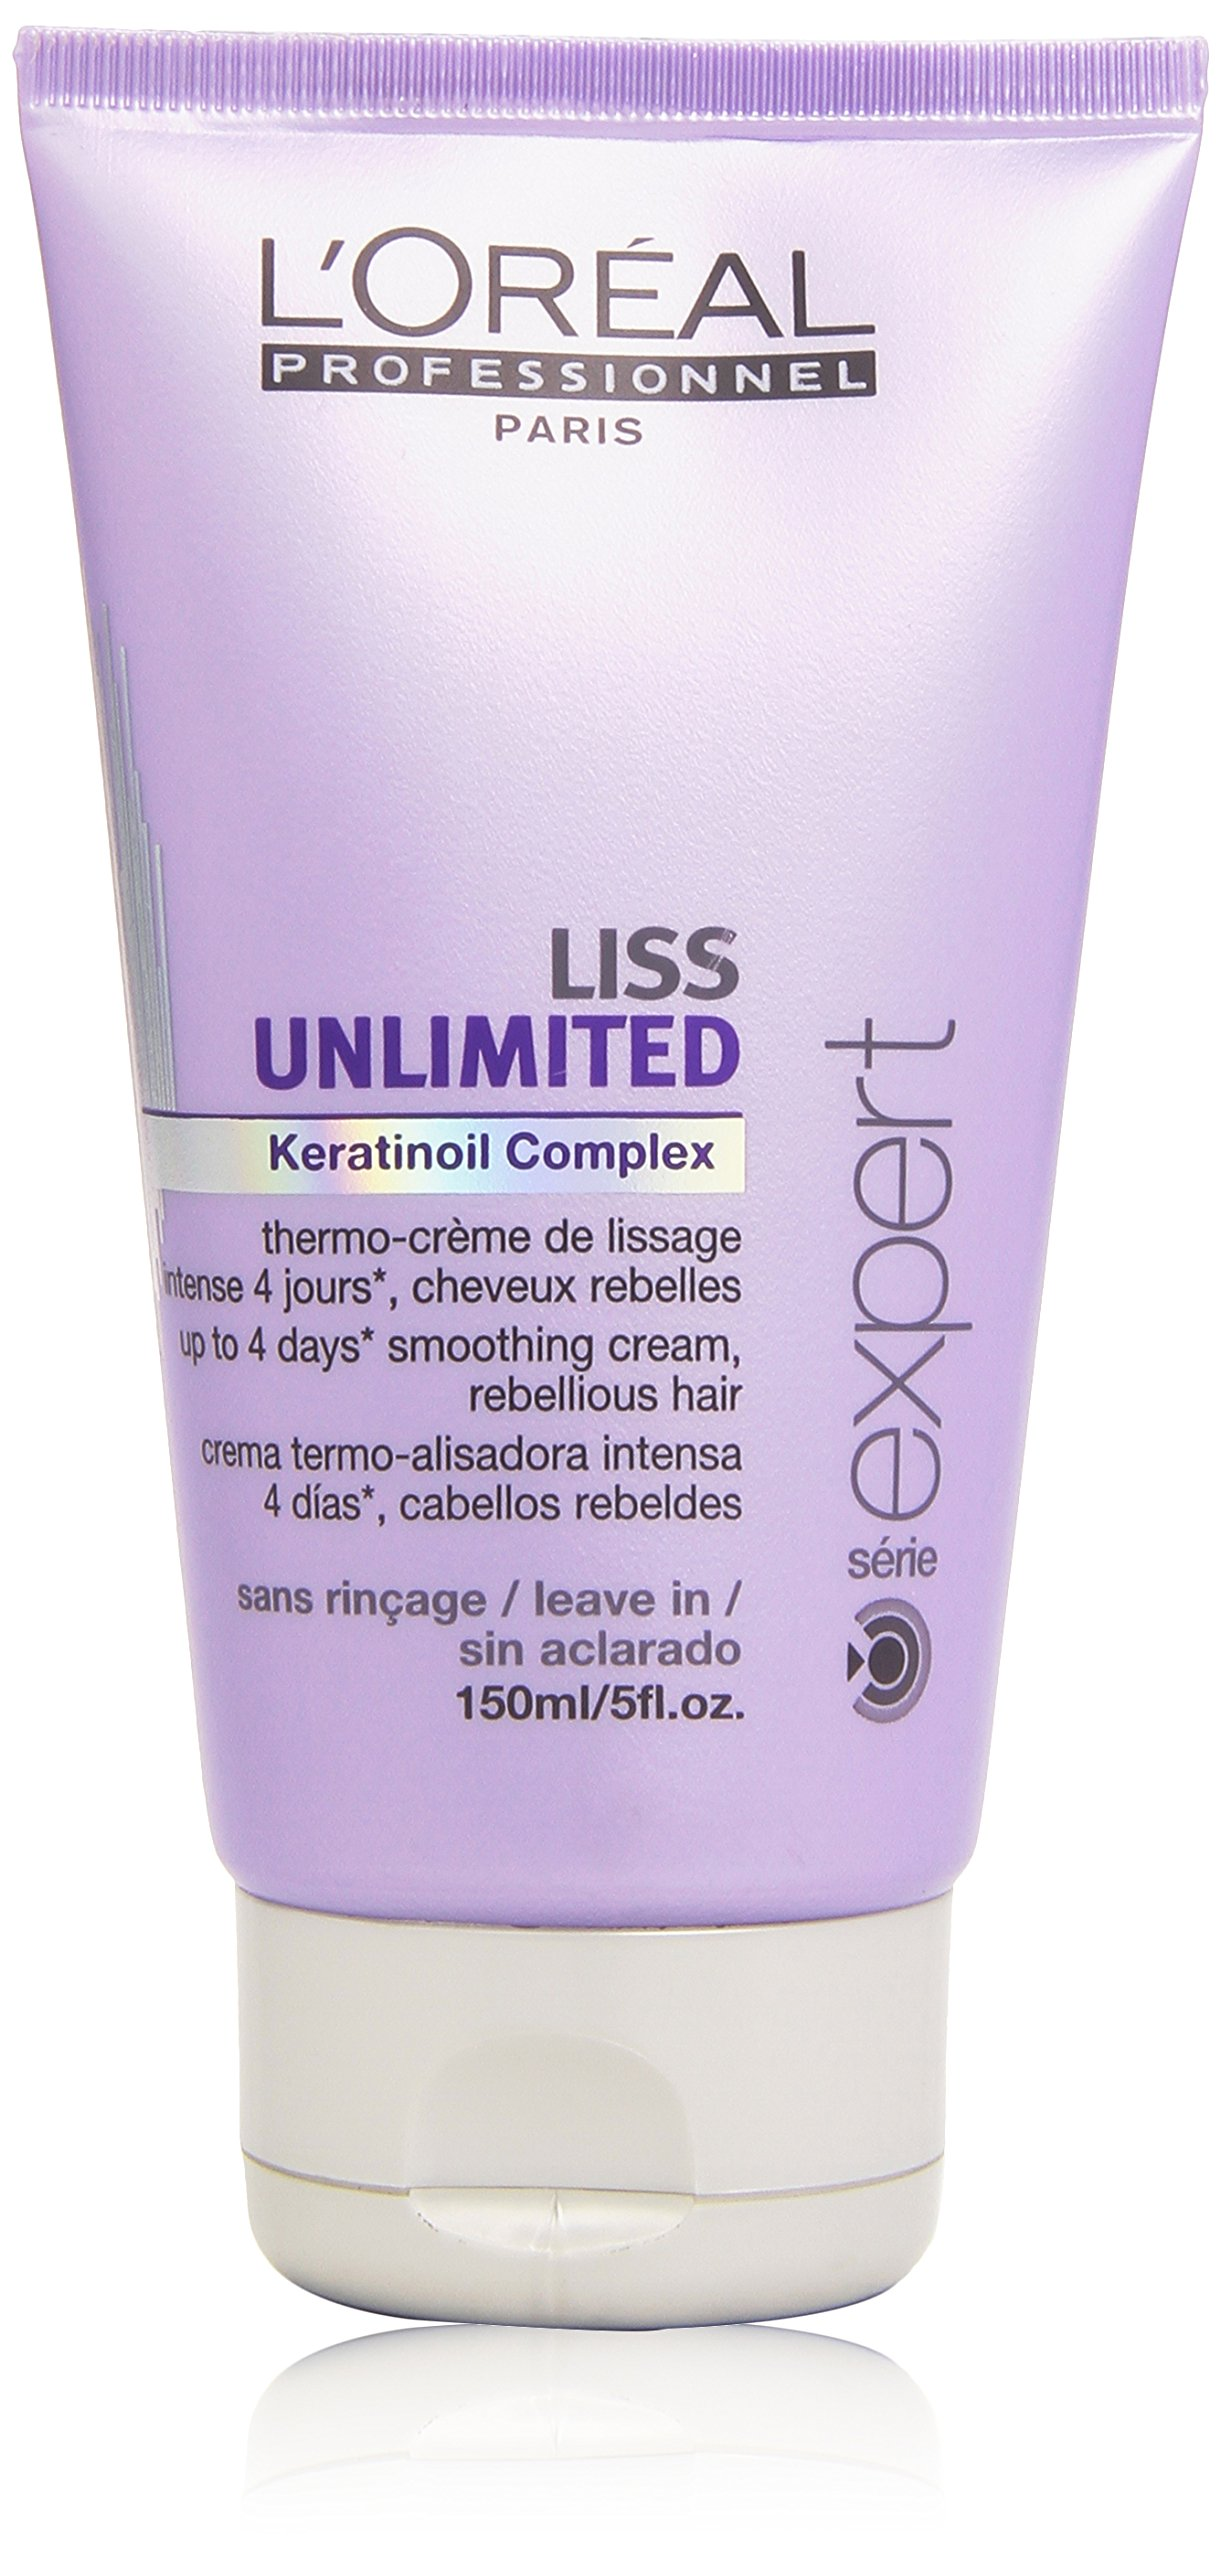 LOreal Professional Serie Expert Liss Unlimited Keratinoil Complex Cream, 5 Ounce